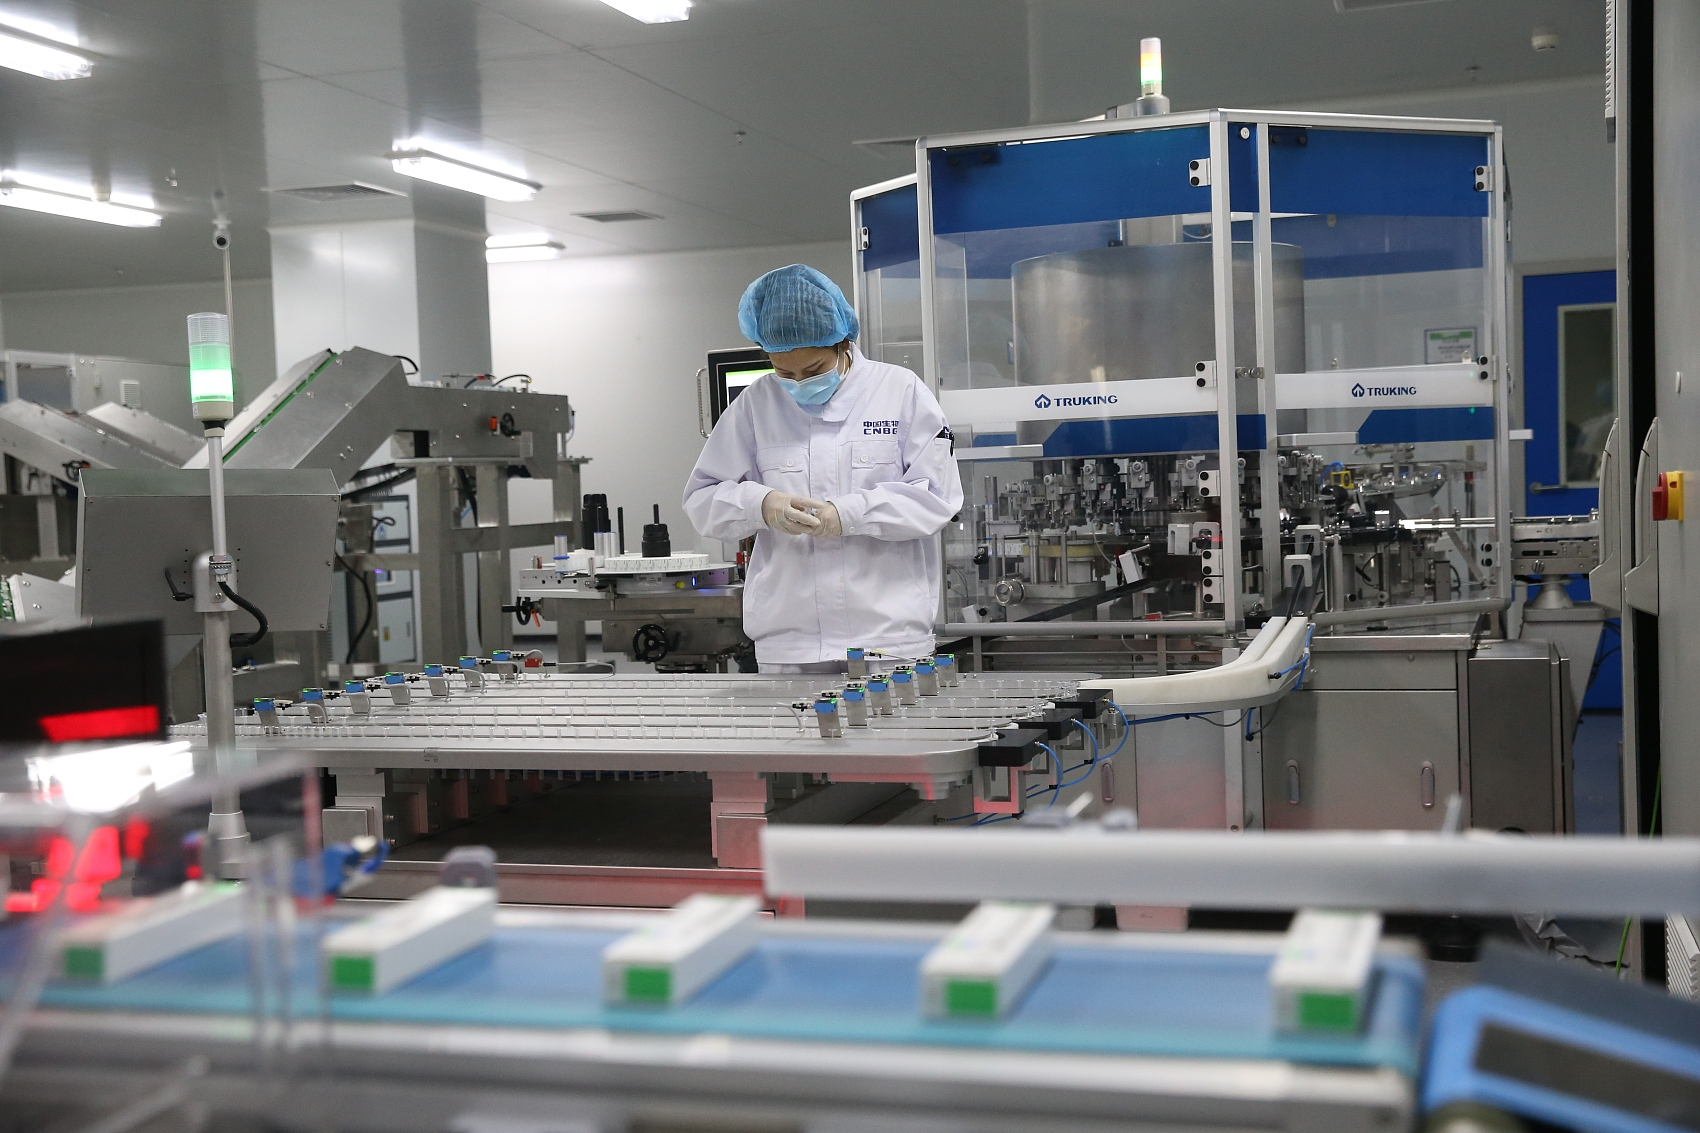 Sinopharm expects to produce over 1 billion doses of COVID-19 vaccines in 2021: company